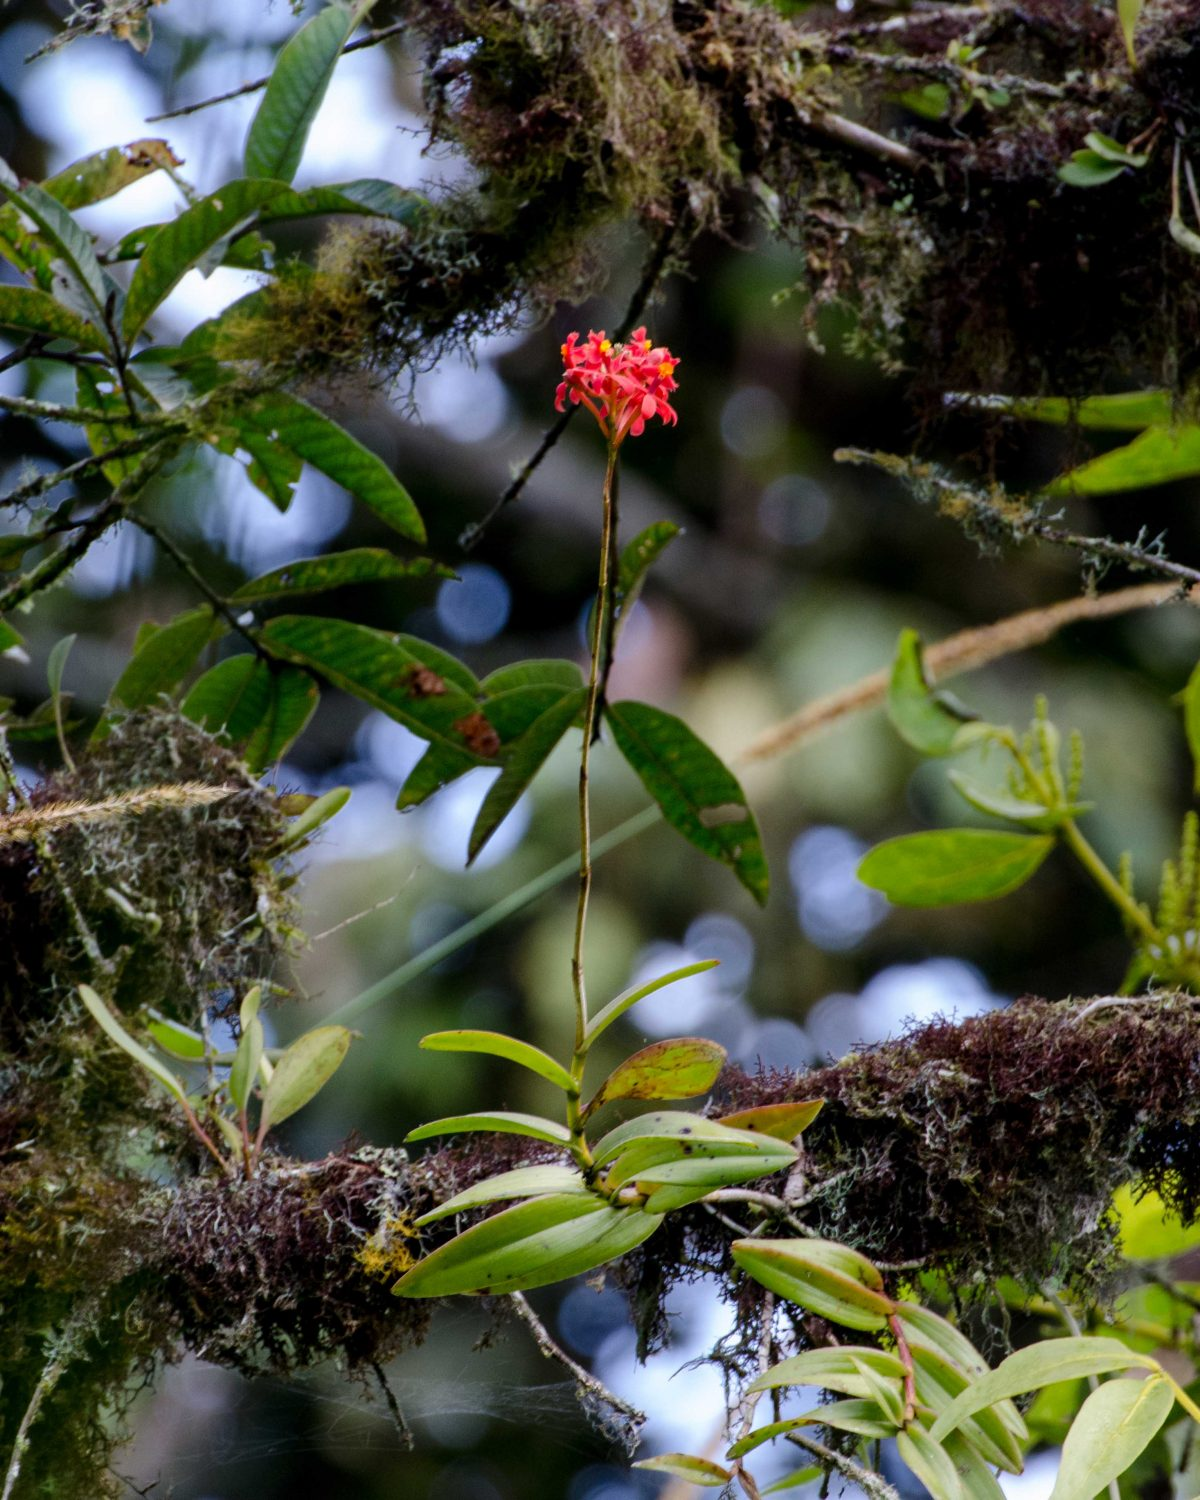 Orchids in a tree, San Jorge de Tandapaya, September 2015 | ©Angela Drake